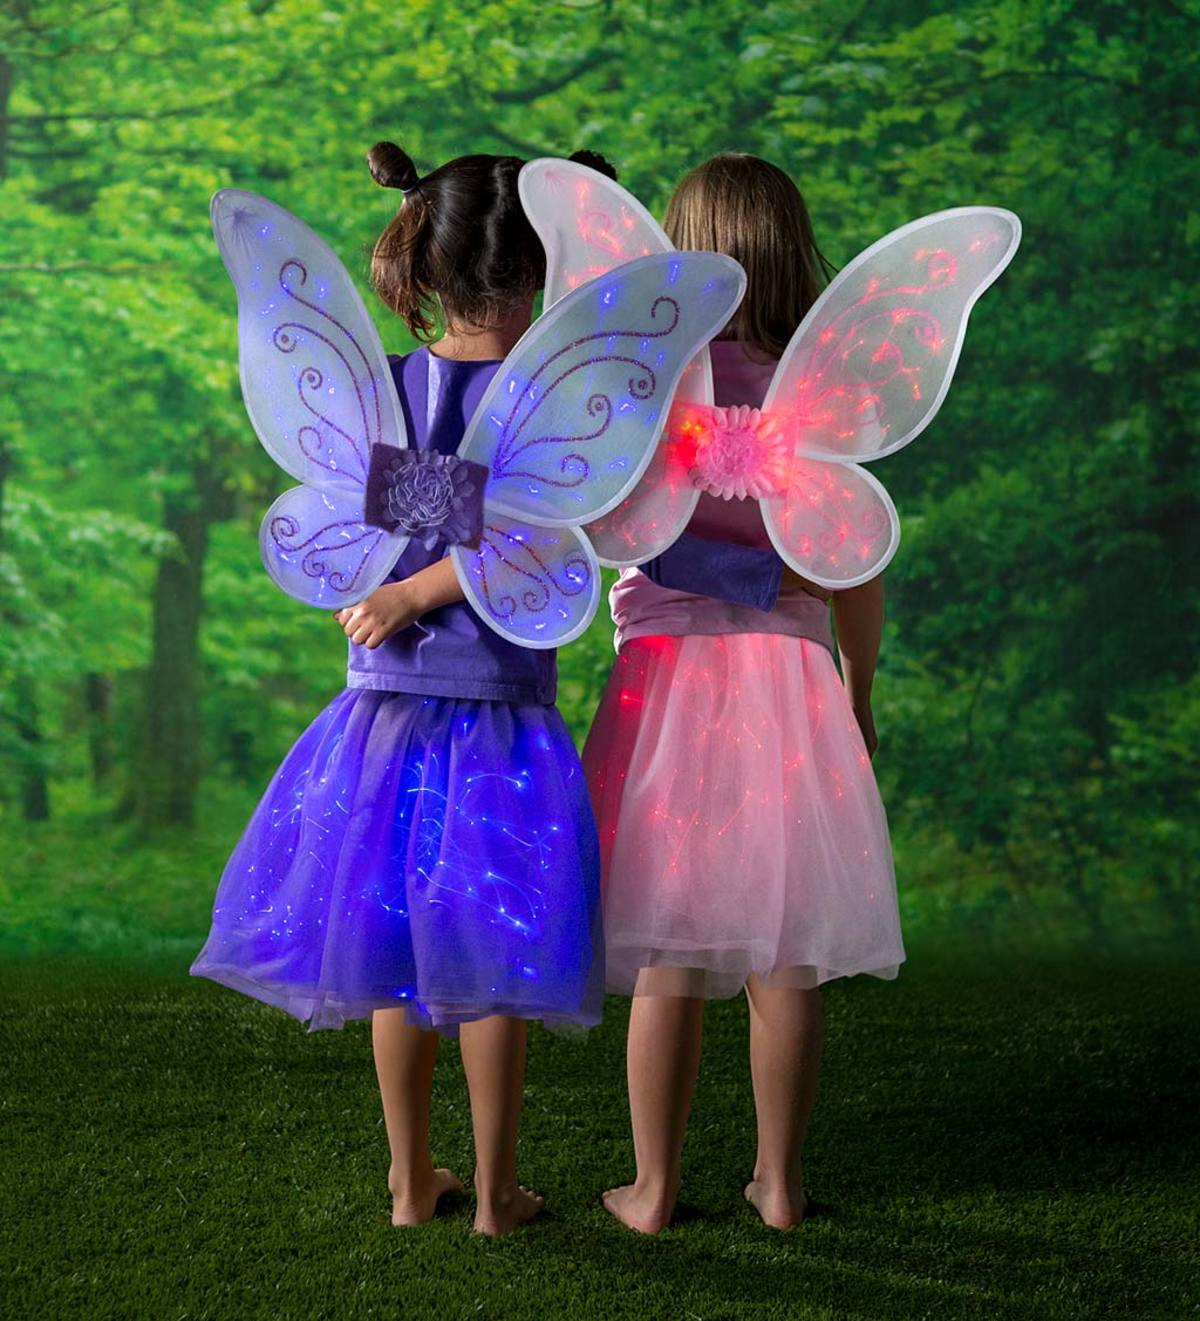 LED Light-Up Tulle Wings